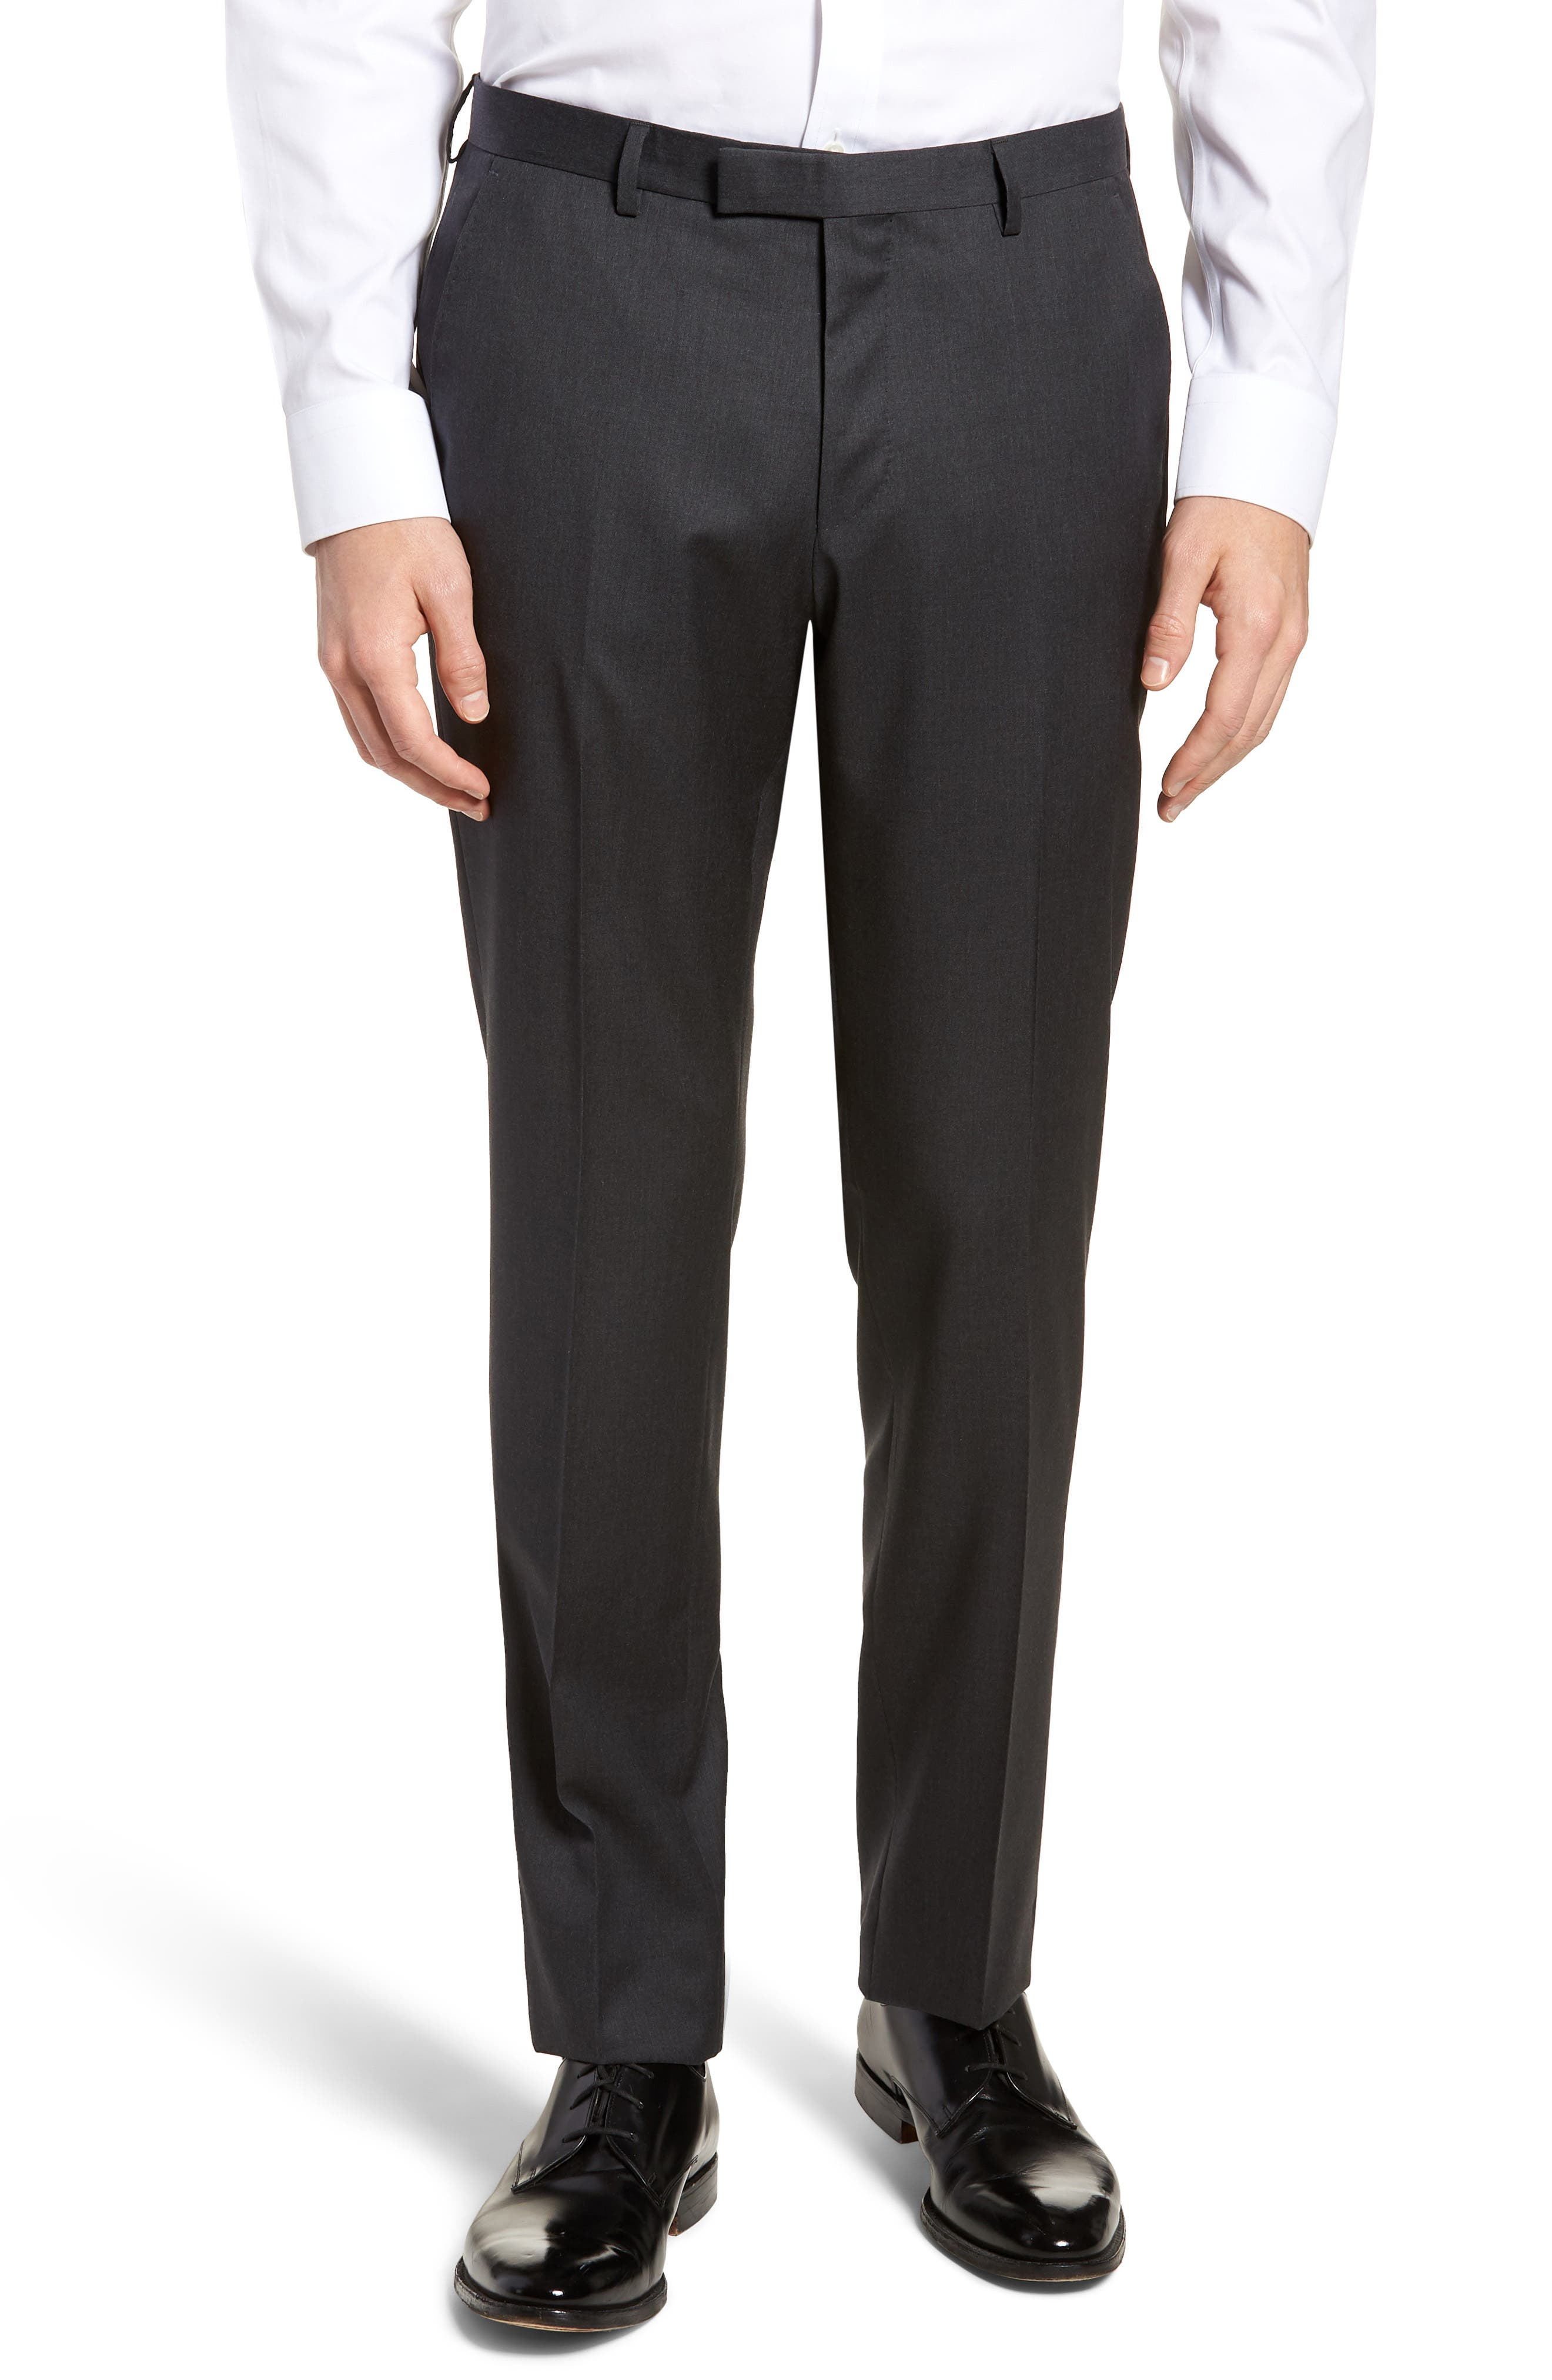 Lenon CYL Flat Front Solid Wool Trousers,                         Main,                         color, Dark Grey